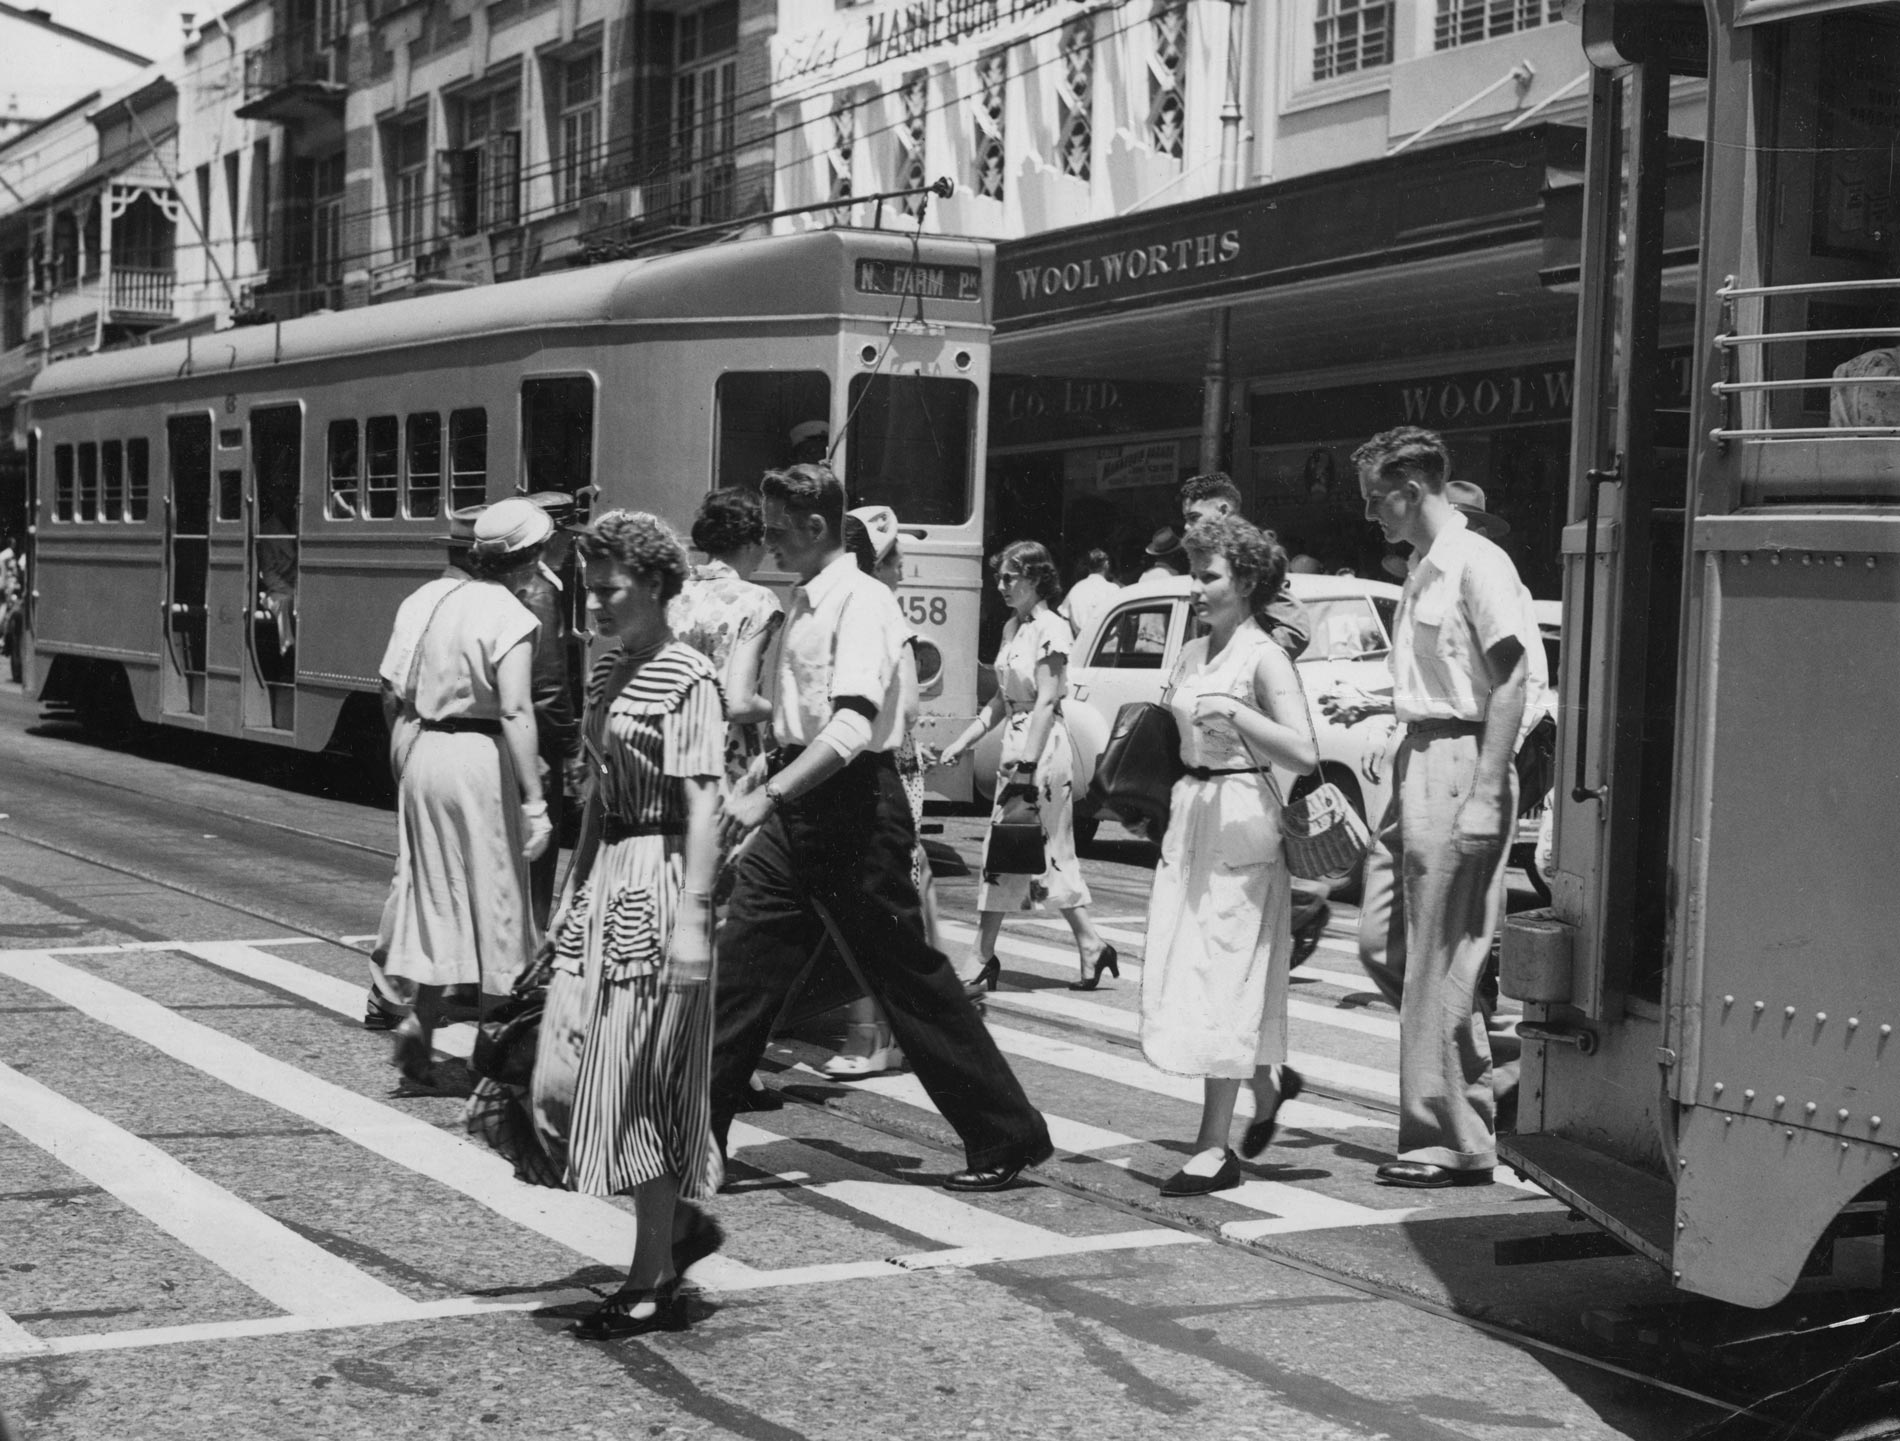 Street scene in Queen Street between Edward and Albert Streets Brisbane 1952